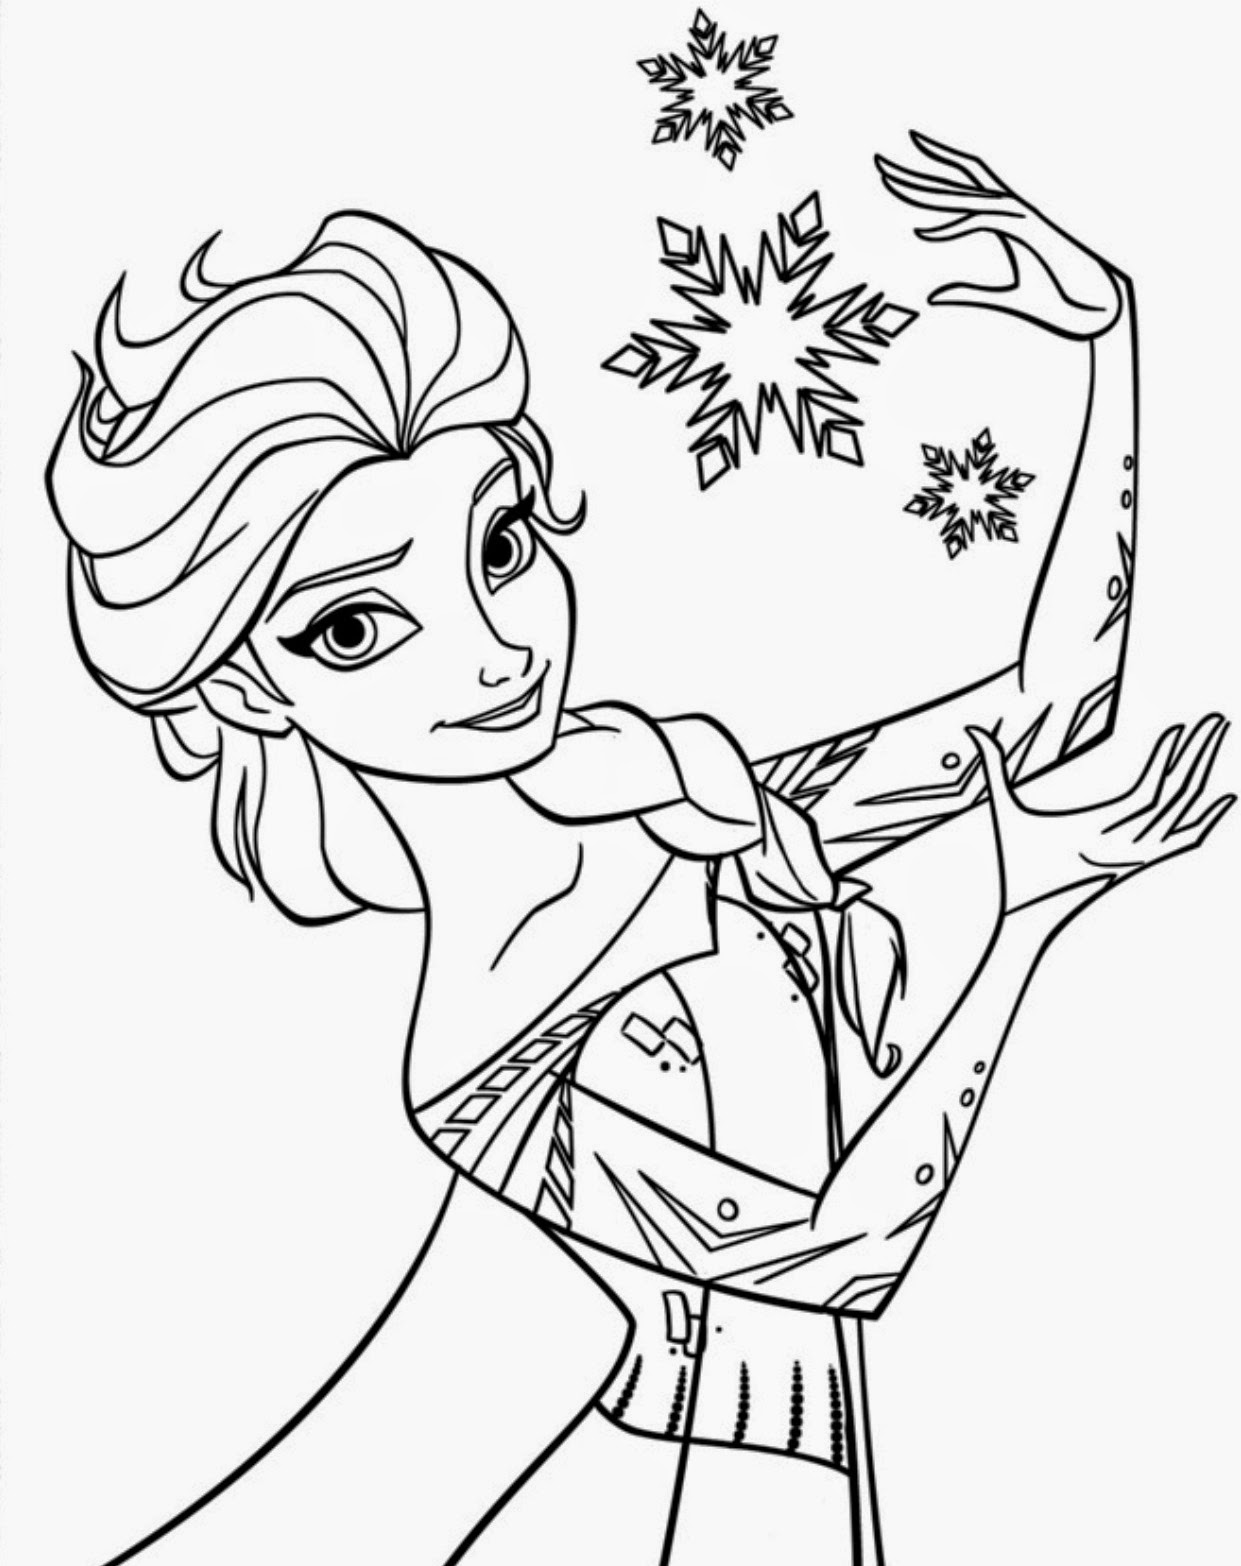 disney frozen coloring pages 15 beautiful disney frozen coloring pages free instant coloring disney frozen pages